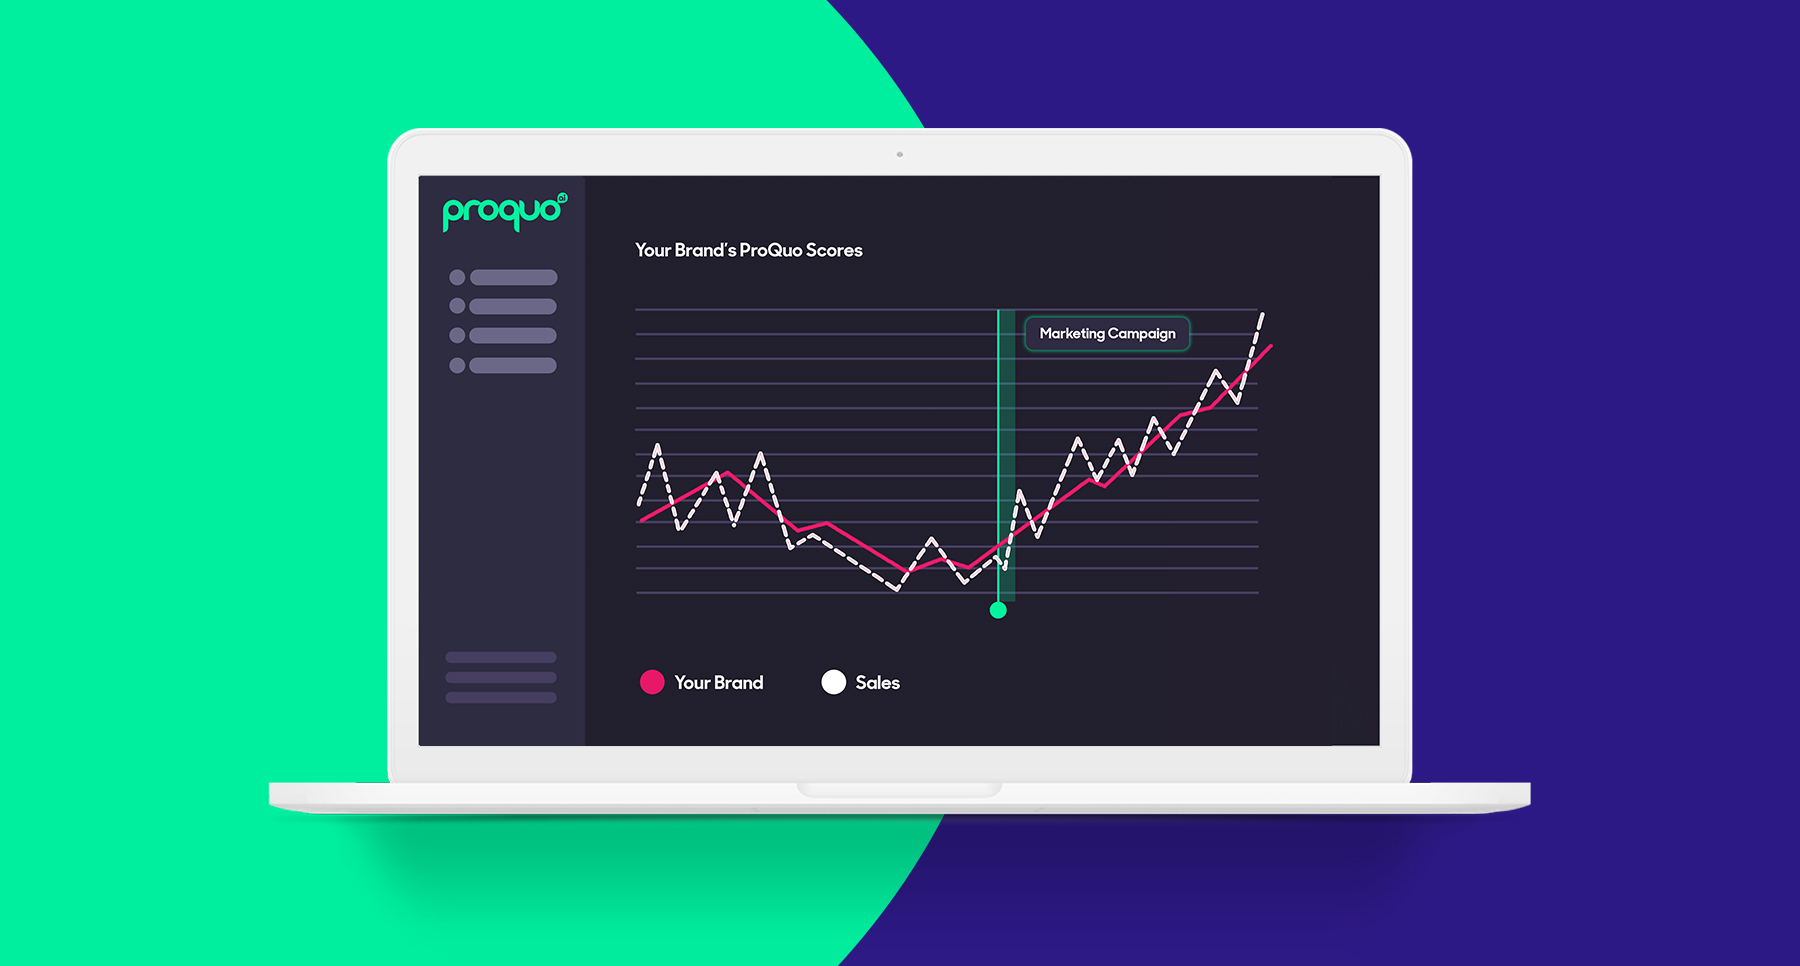 ProQuo AI's brand management platform showing a brand's marketing positive impact on sales on a graph